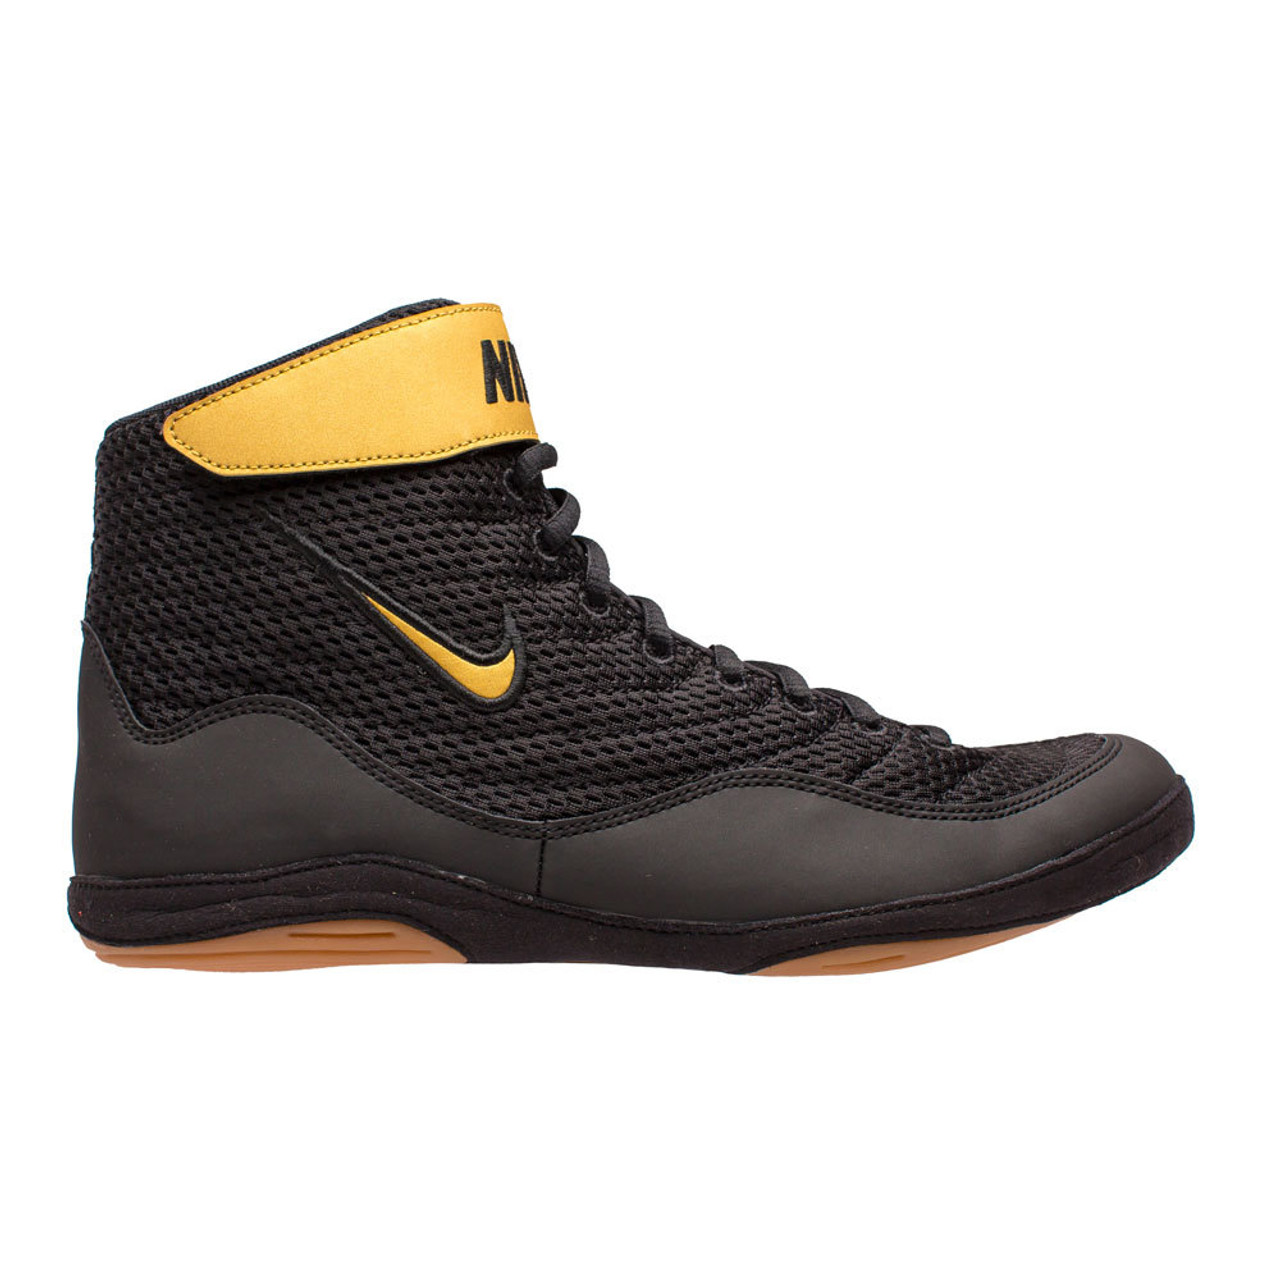 save off 37b1b 8a830 Nike Inflict 3 Training Boots Black Gold ...